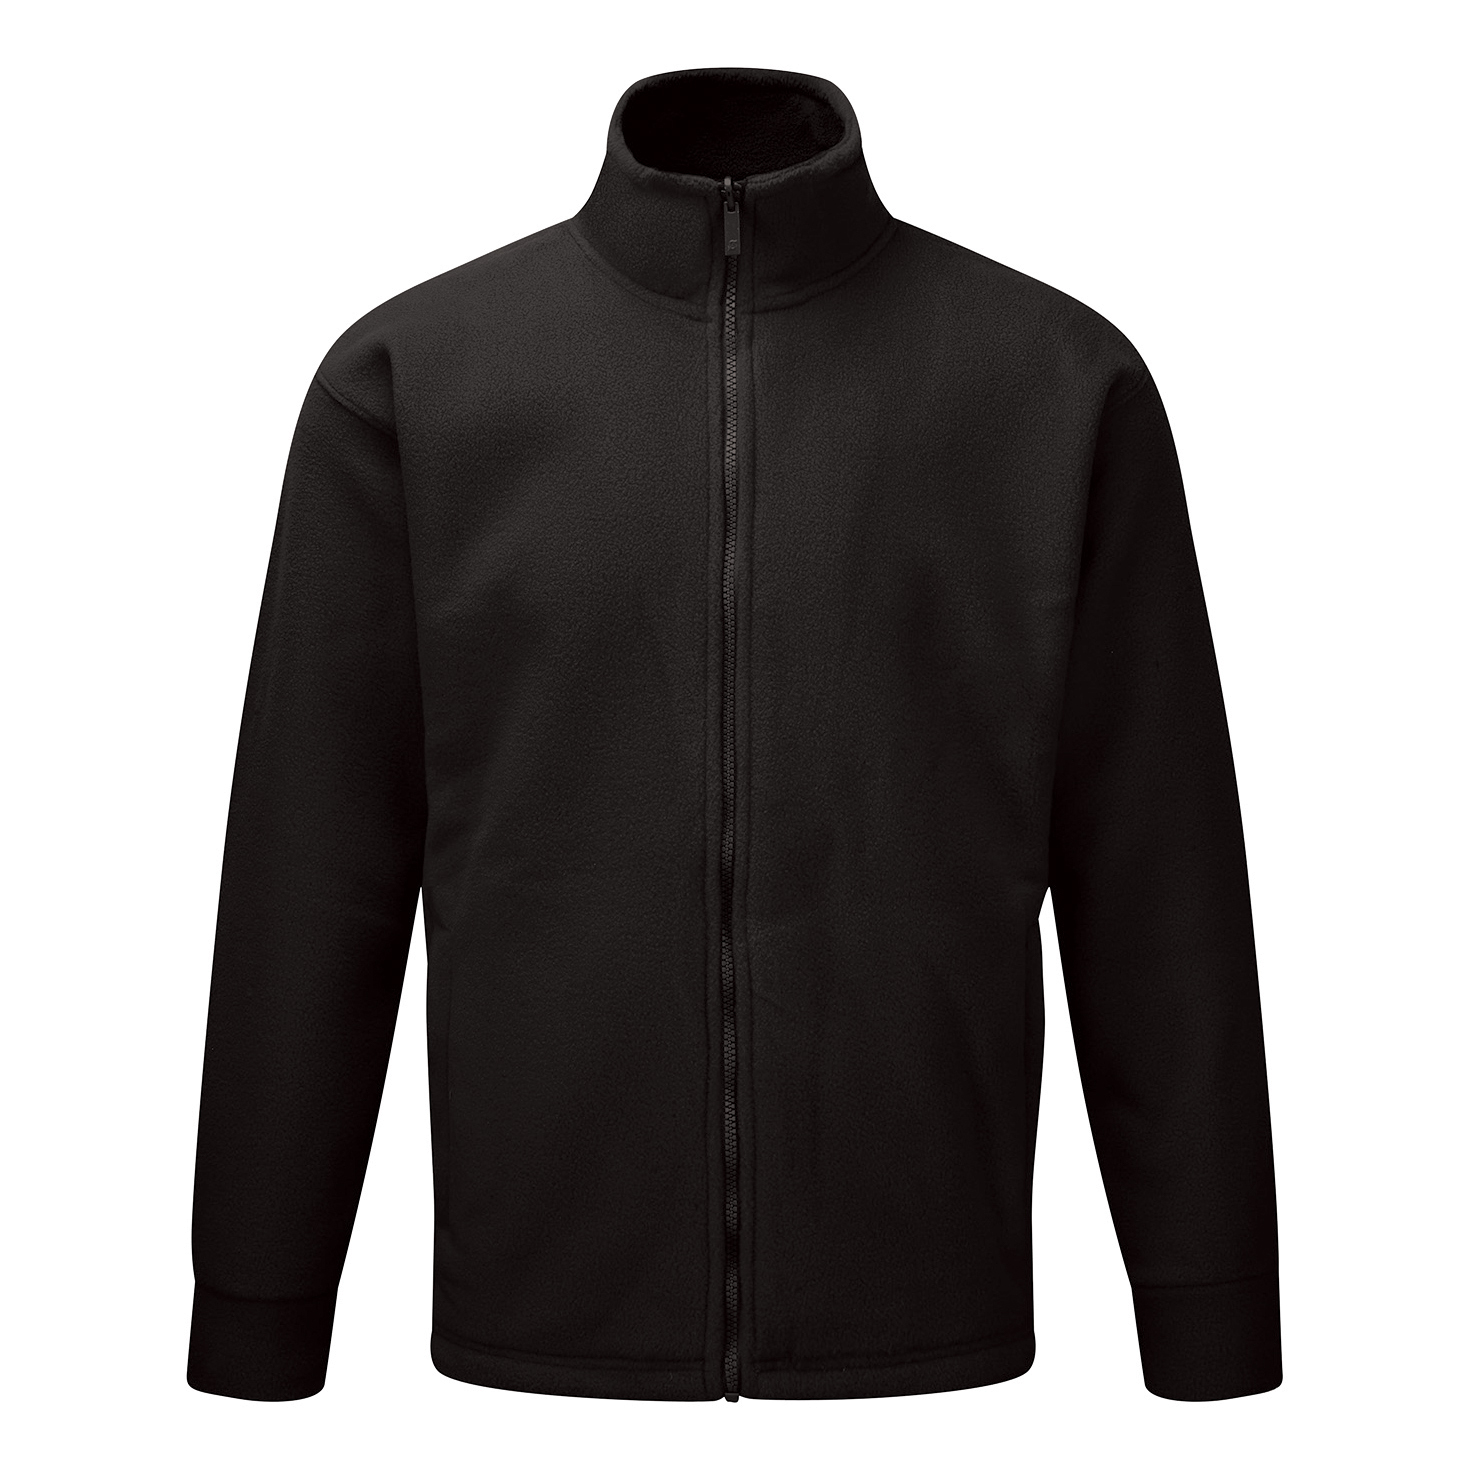 Classic Fleece Jacket Elasticated Cuffs Full Zip Front 3XL Black Ref FLJBL3XL 1-3 Days Lead Time